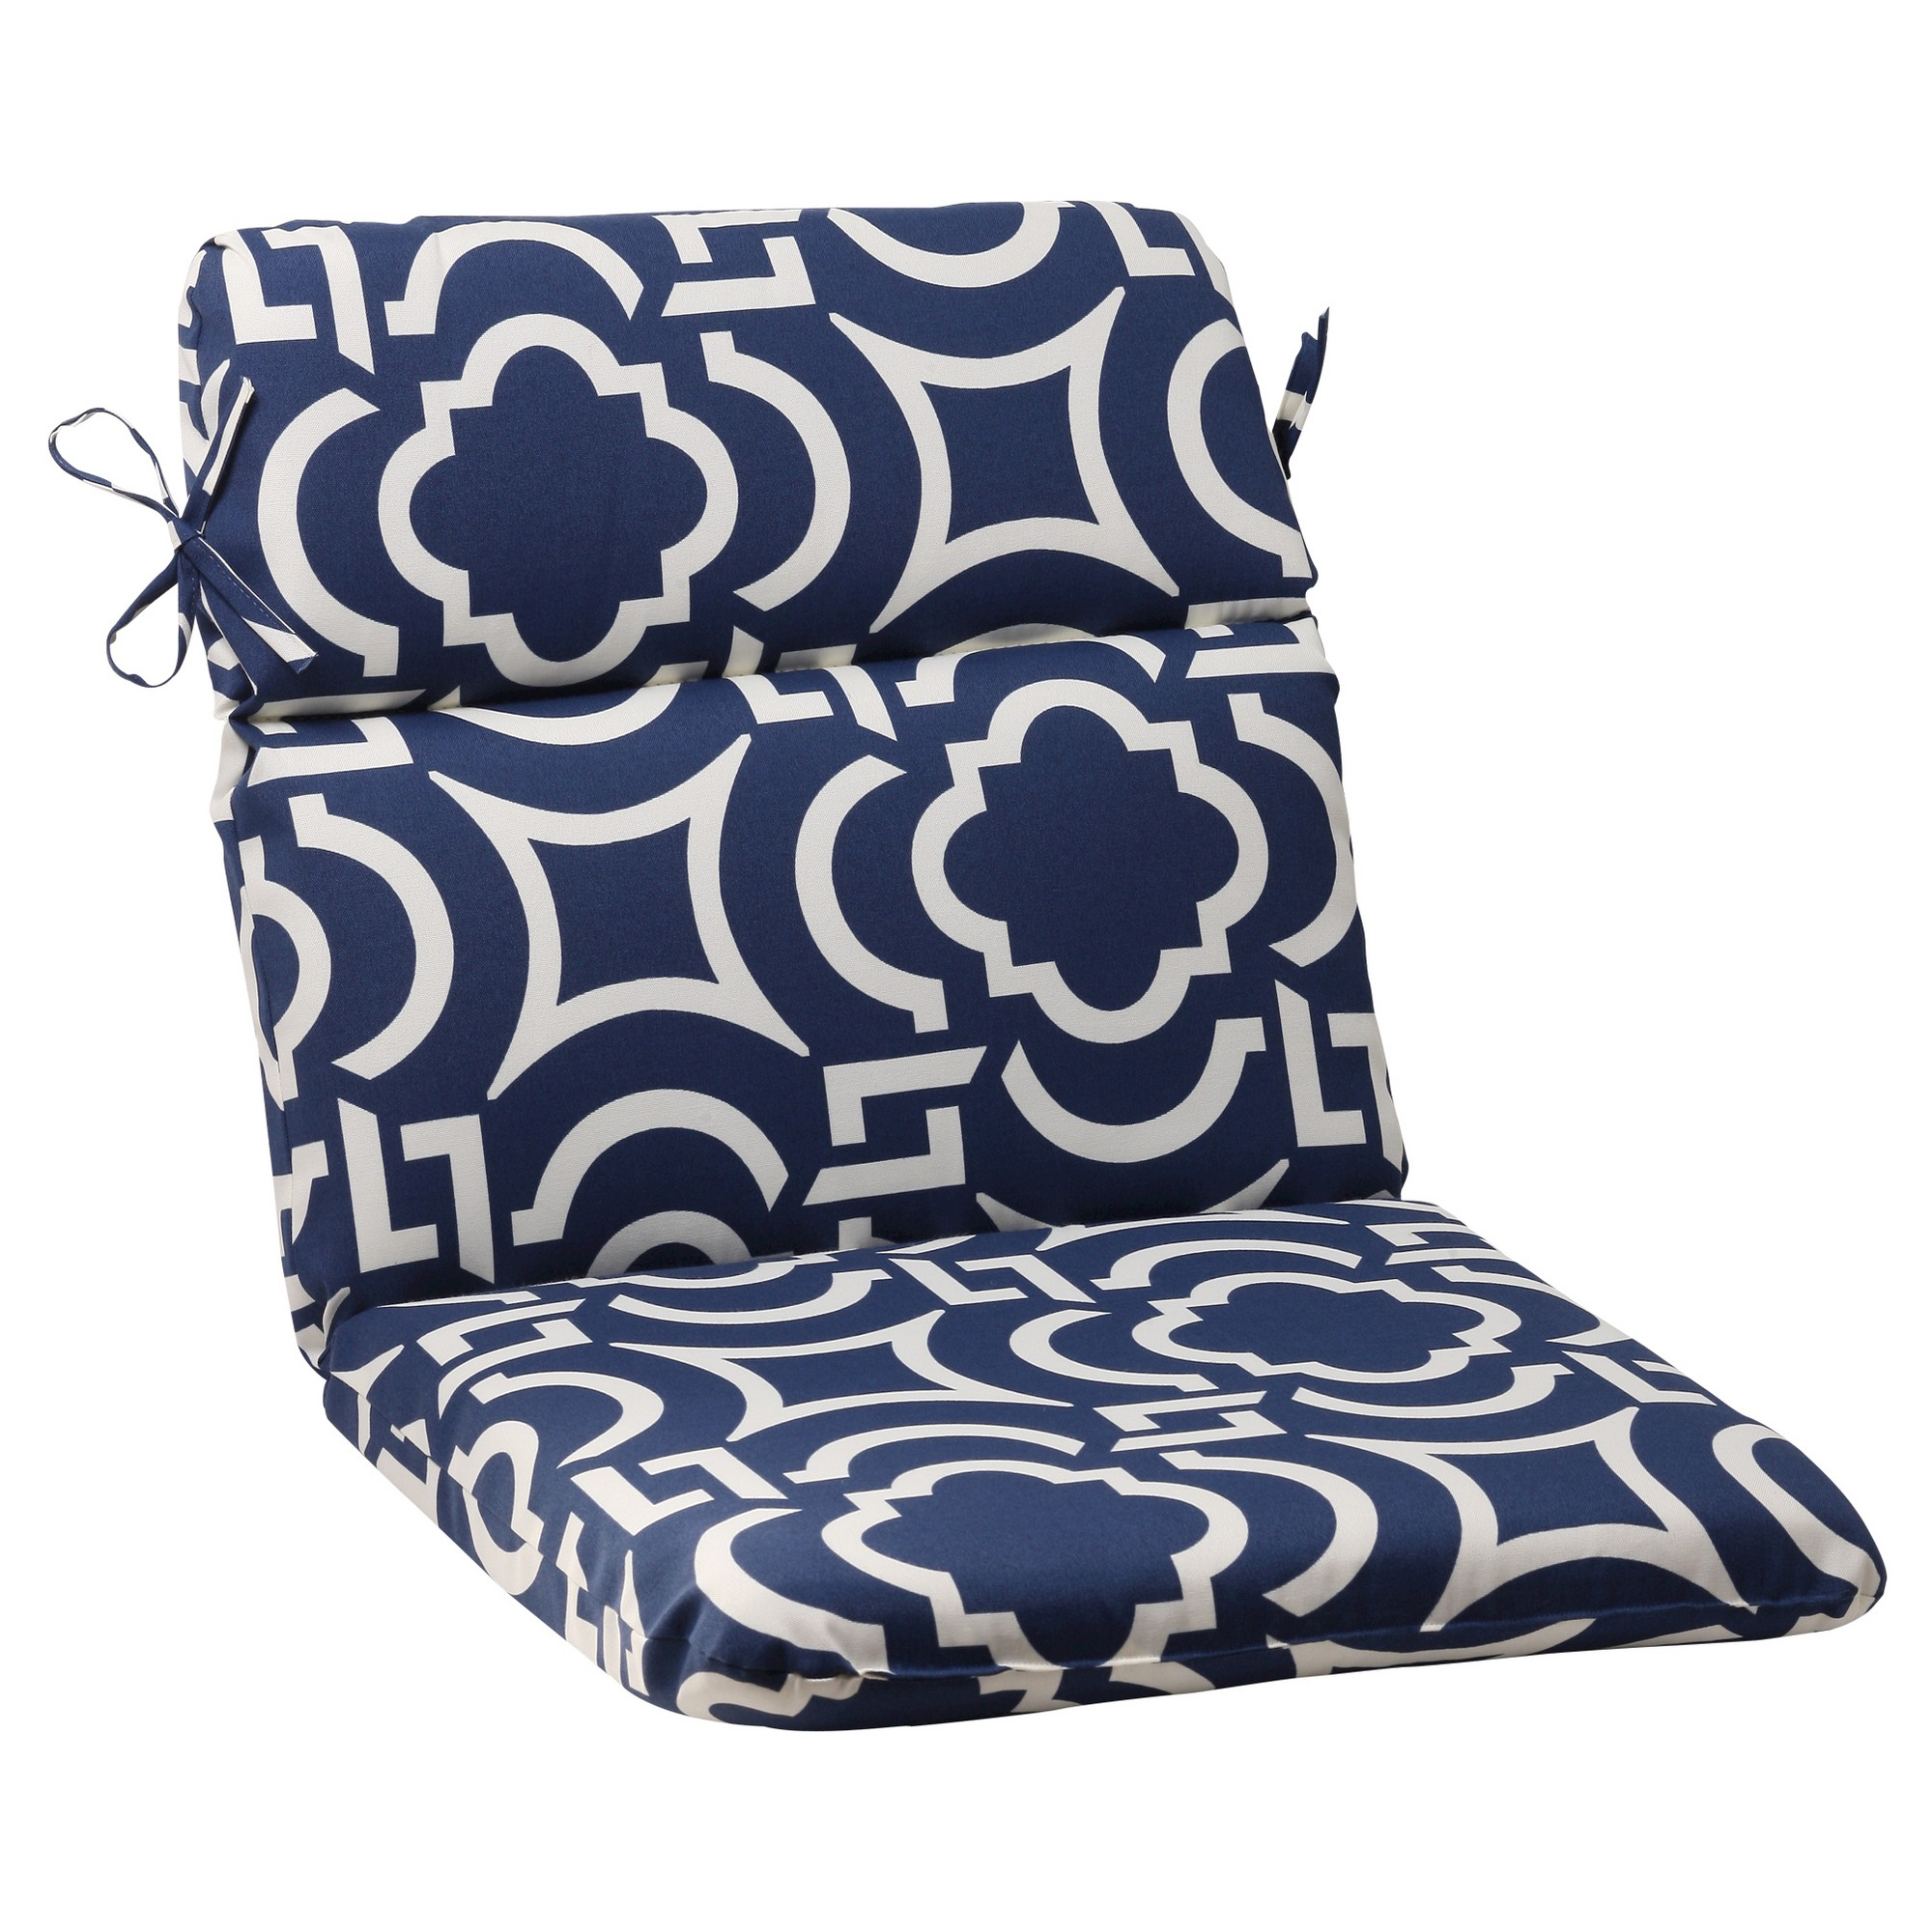 outdoor rounded chair cushion blue white geometric products rh pinterest com